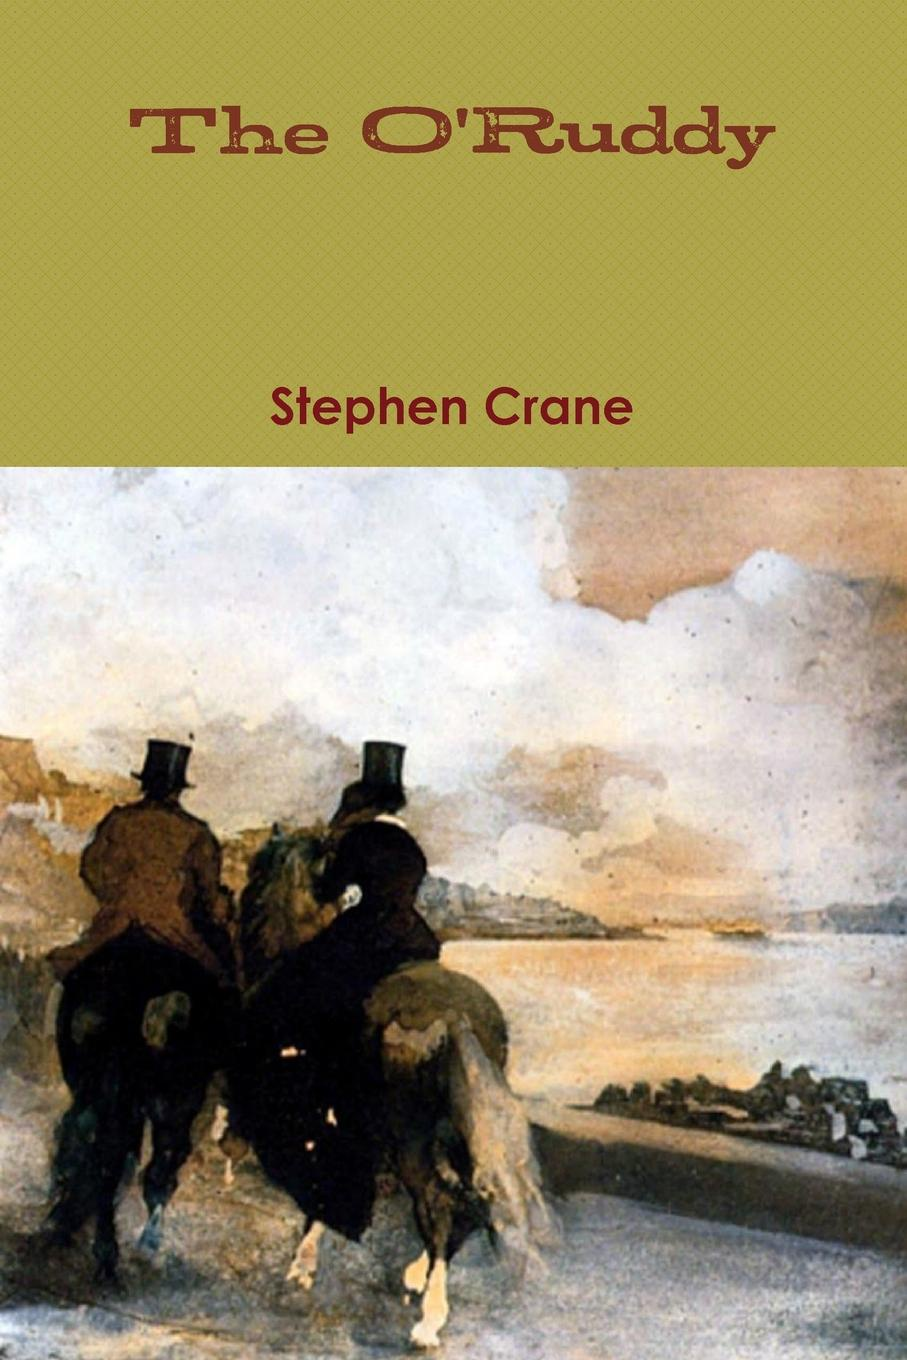 Stephen Crane The O.Ruddy barr robert the o ruddy a romance